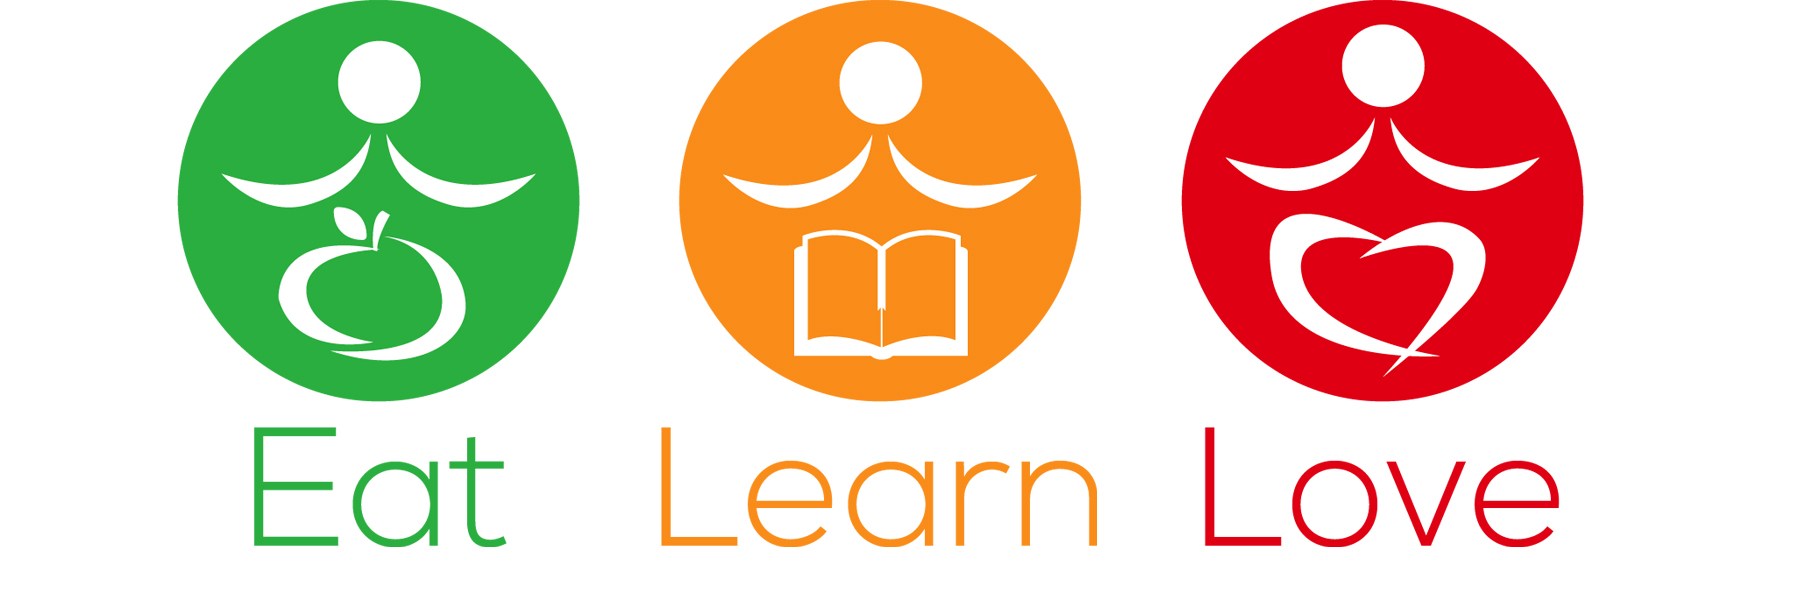 eat-learn-love-logo-with-text